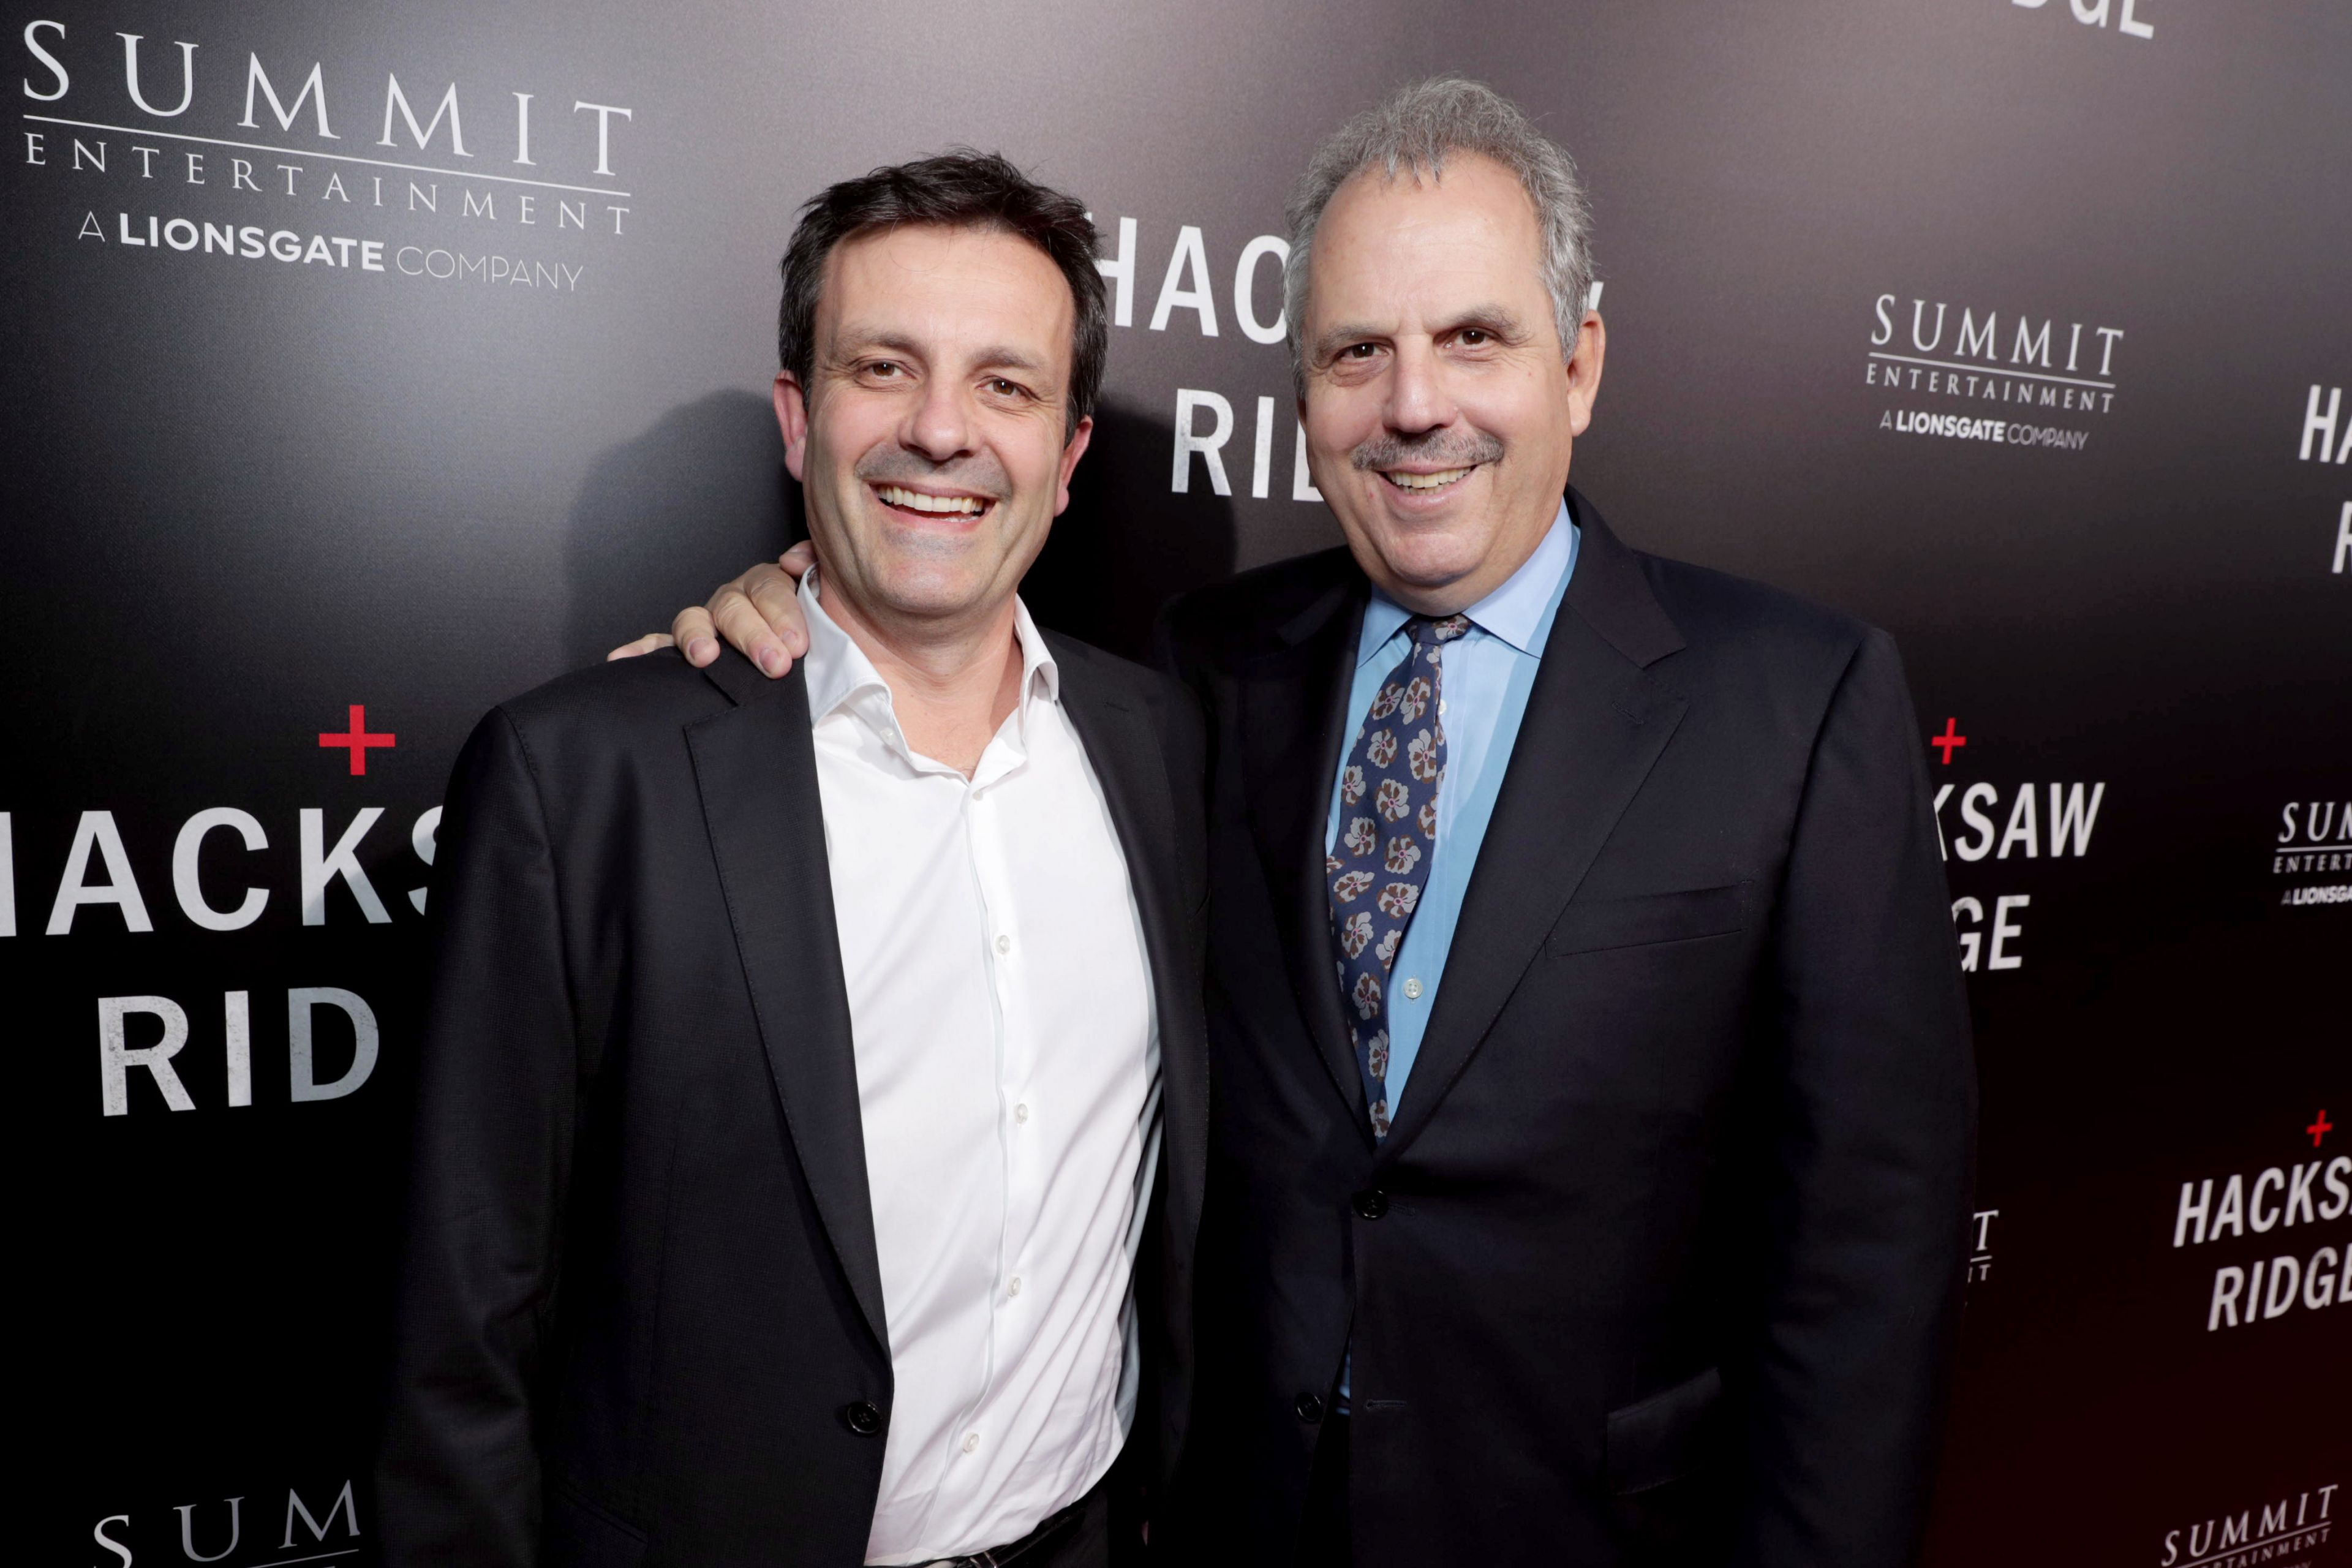 """Composer Rupert Gregson-Williams and Producer Bill Mechanic seen at Summit Entertainment, a Lionsgate Company, Los Angeles Special Screening of """"Hacksaw Ridge"""" at The Academy's Samuel Goldwyn Theater on Monday, Oct. 24, 2016, in Beverly Hills, Calif. (Photo by Eric Charbonneau/Invision for Lionsgate/AP Images)"""